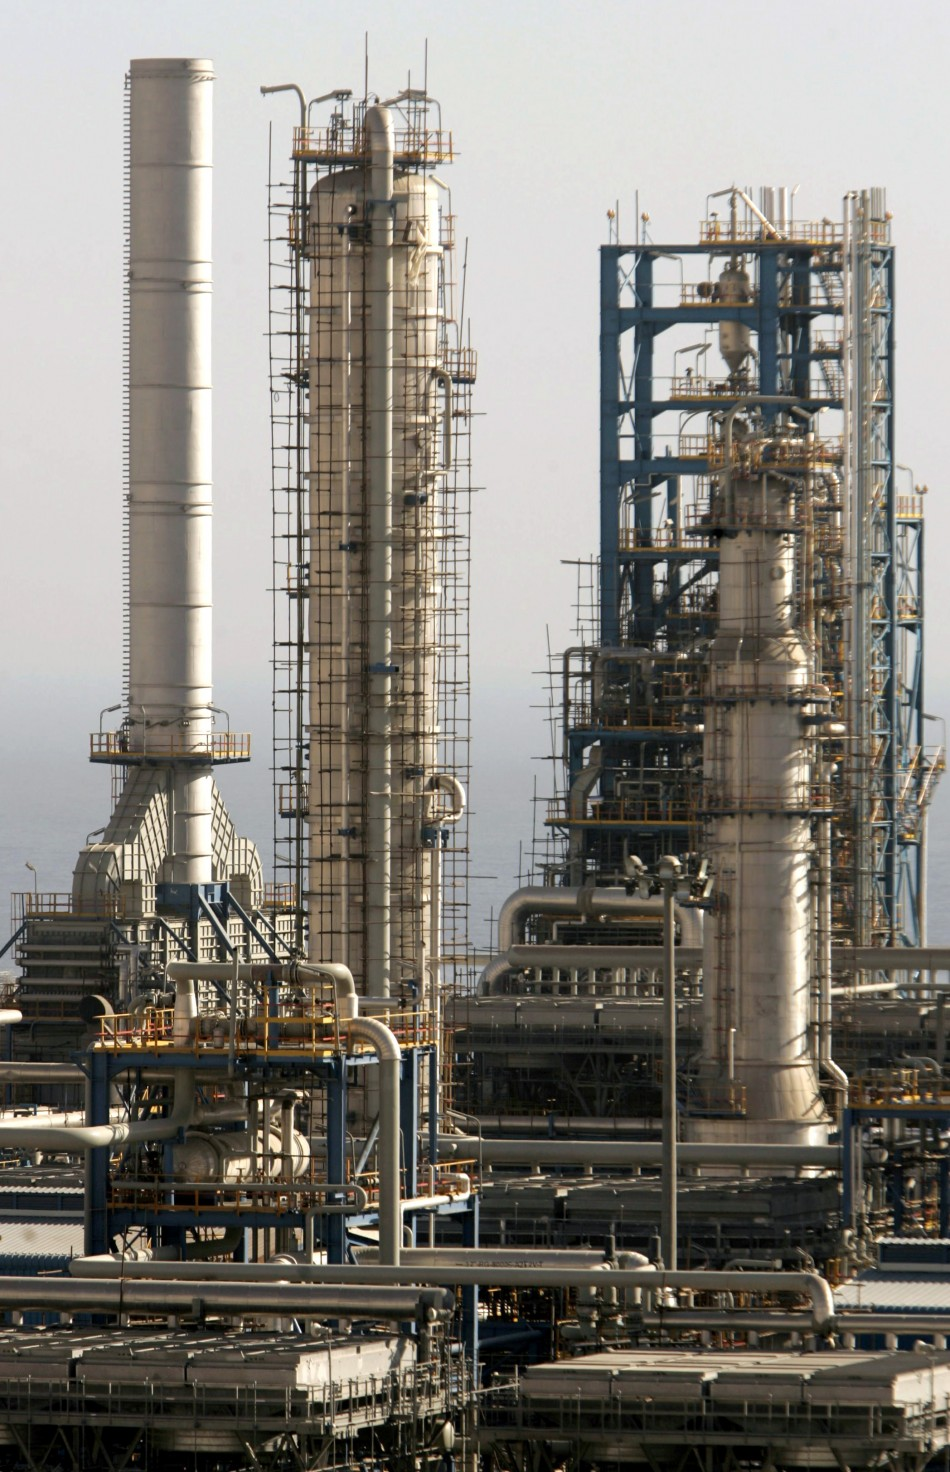 View of petrochemical complex in seaport of Assaluyeh on Iran's Persian Gulf coast